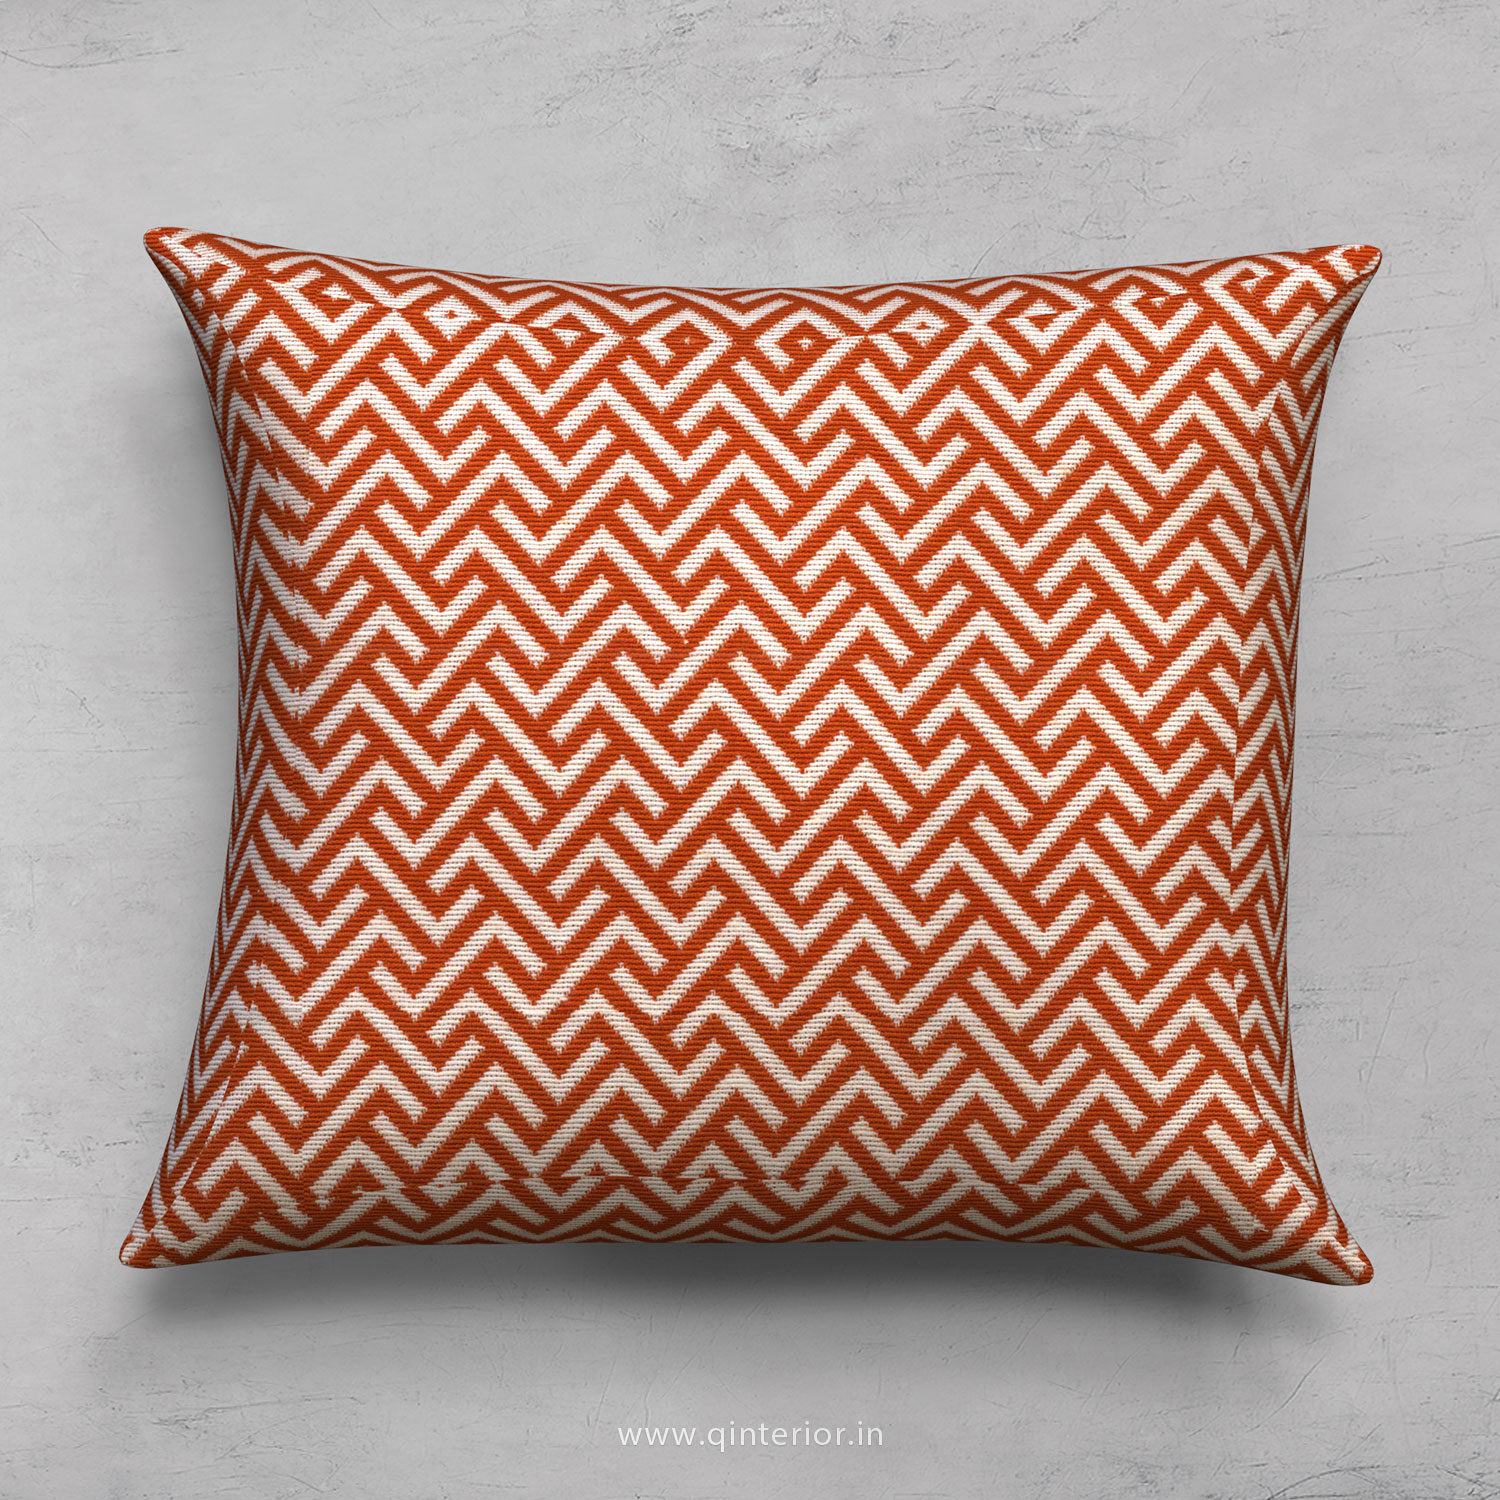 Orange Zigzag Cushion With Cushion Cover - CUS001 BG